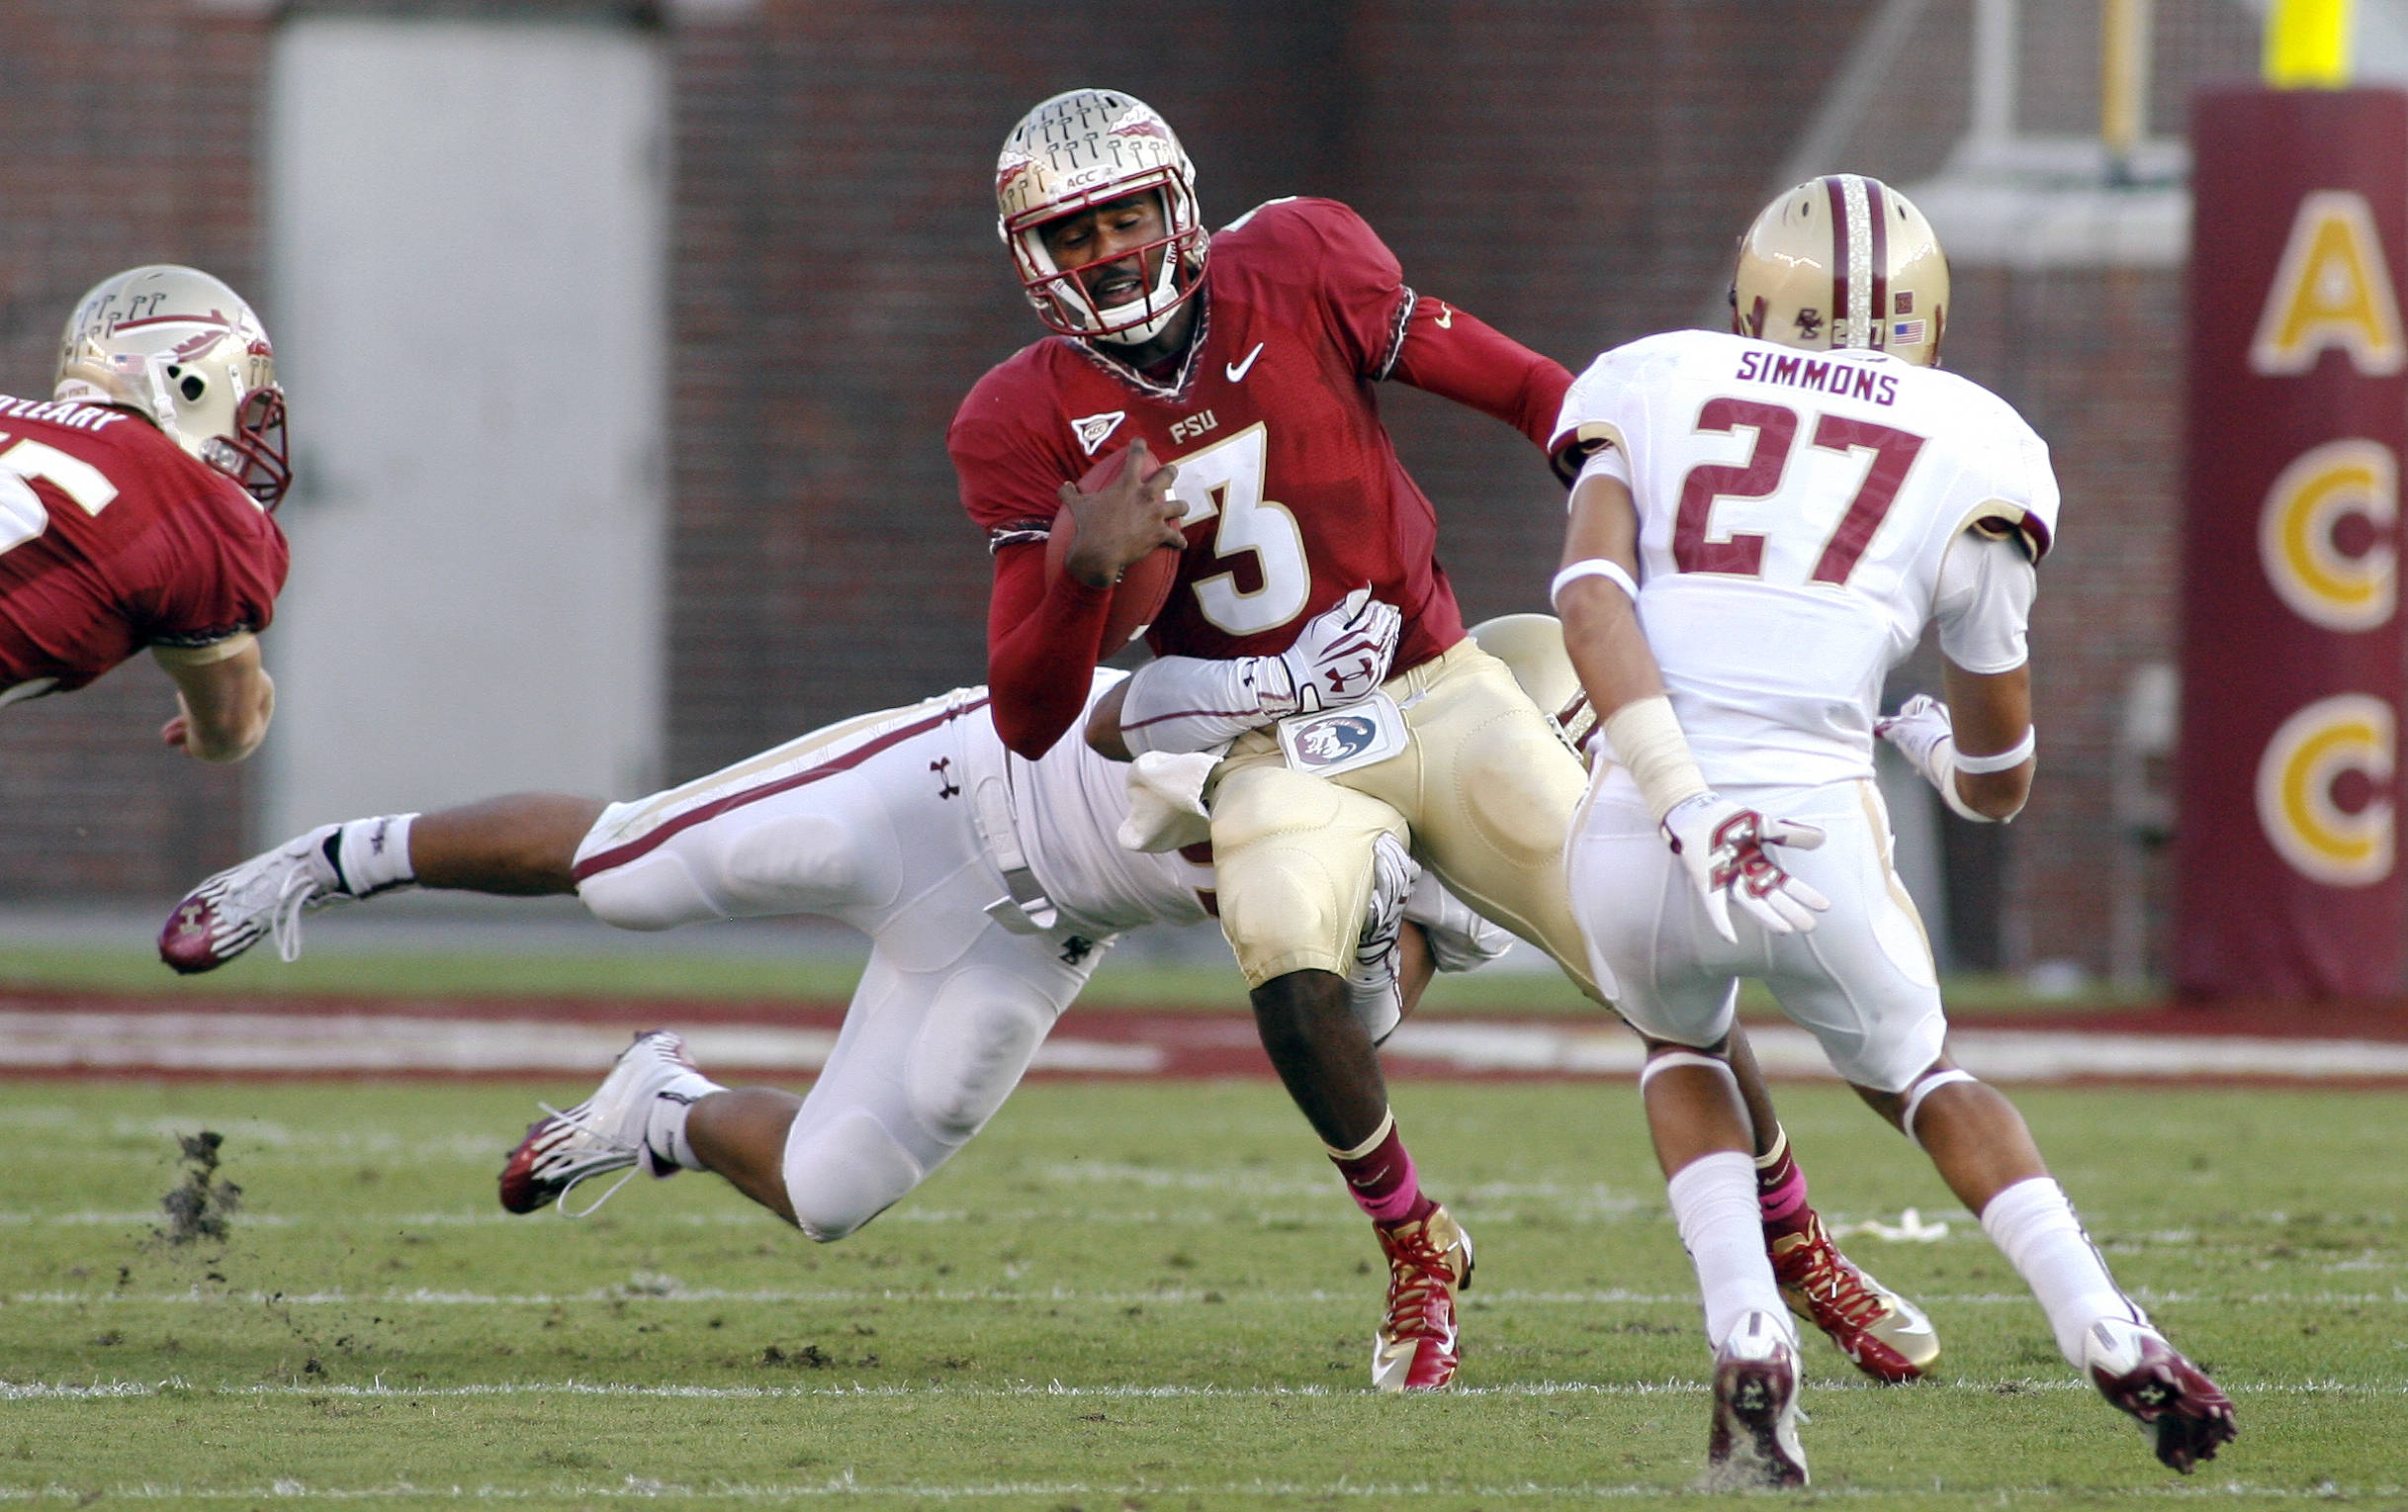 Florida State quarterback E.J. Manuel (3) is caught in the backfield by Boston College defensive end Kasim Edebali (in back) during the first quarter. (AP Photo/Phil Sears)